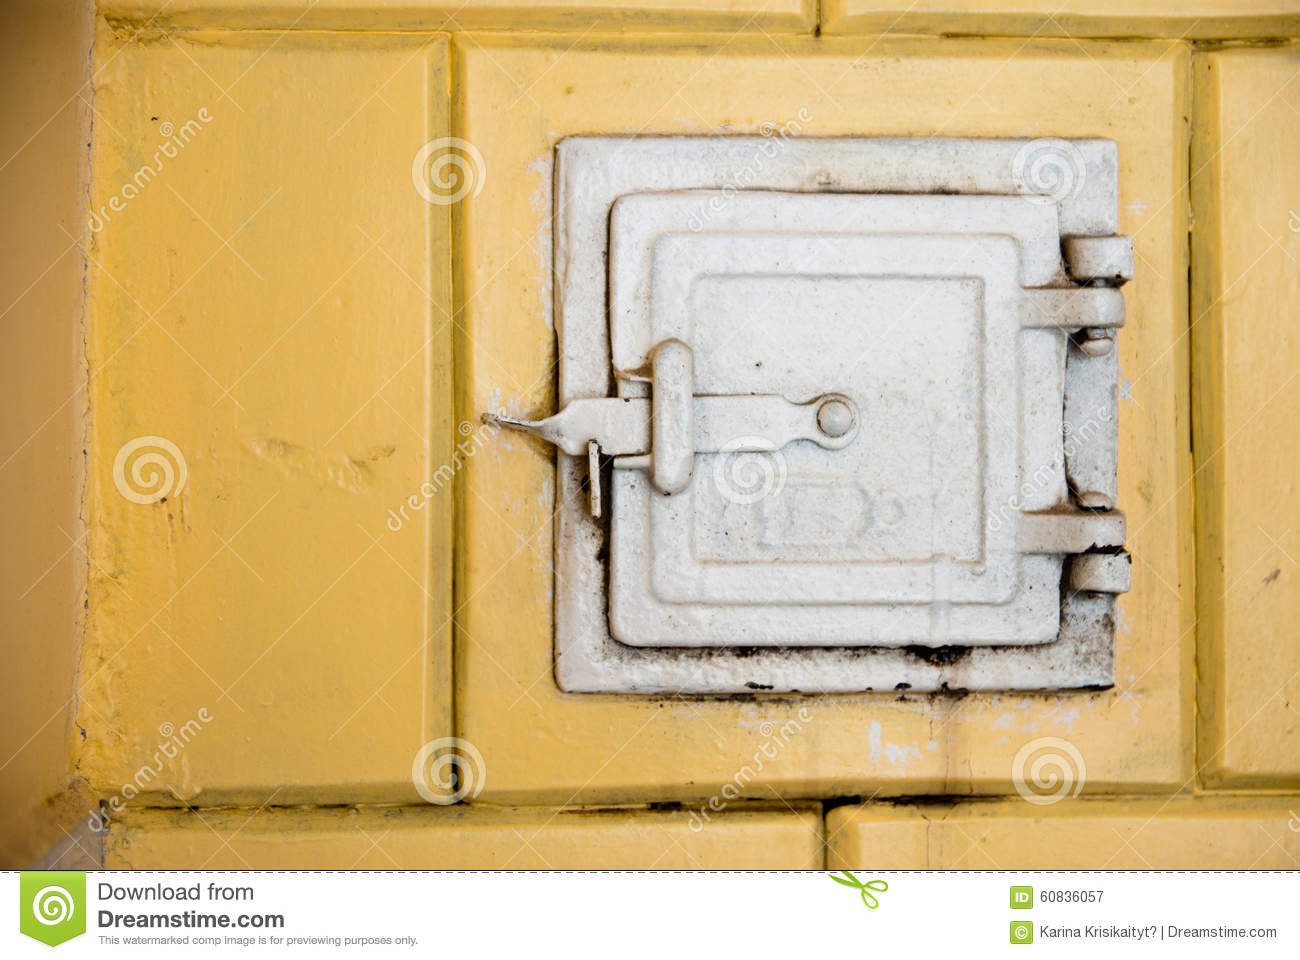 Old vintage rustic furnace door.  sc 1 st  Megapixl.com & Old Vintage Rustic Furnace Door. Stock Photo 60836057 - Megapixl